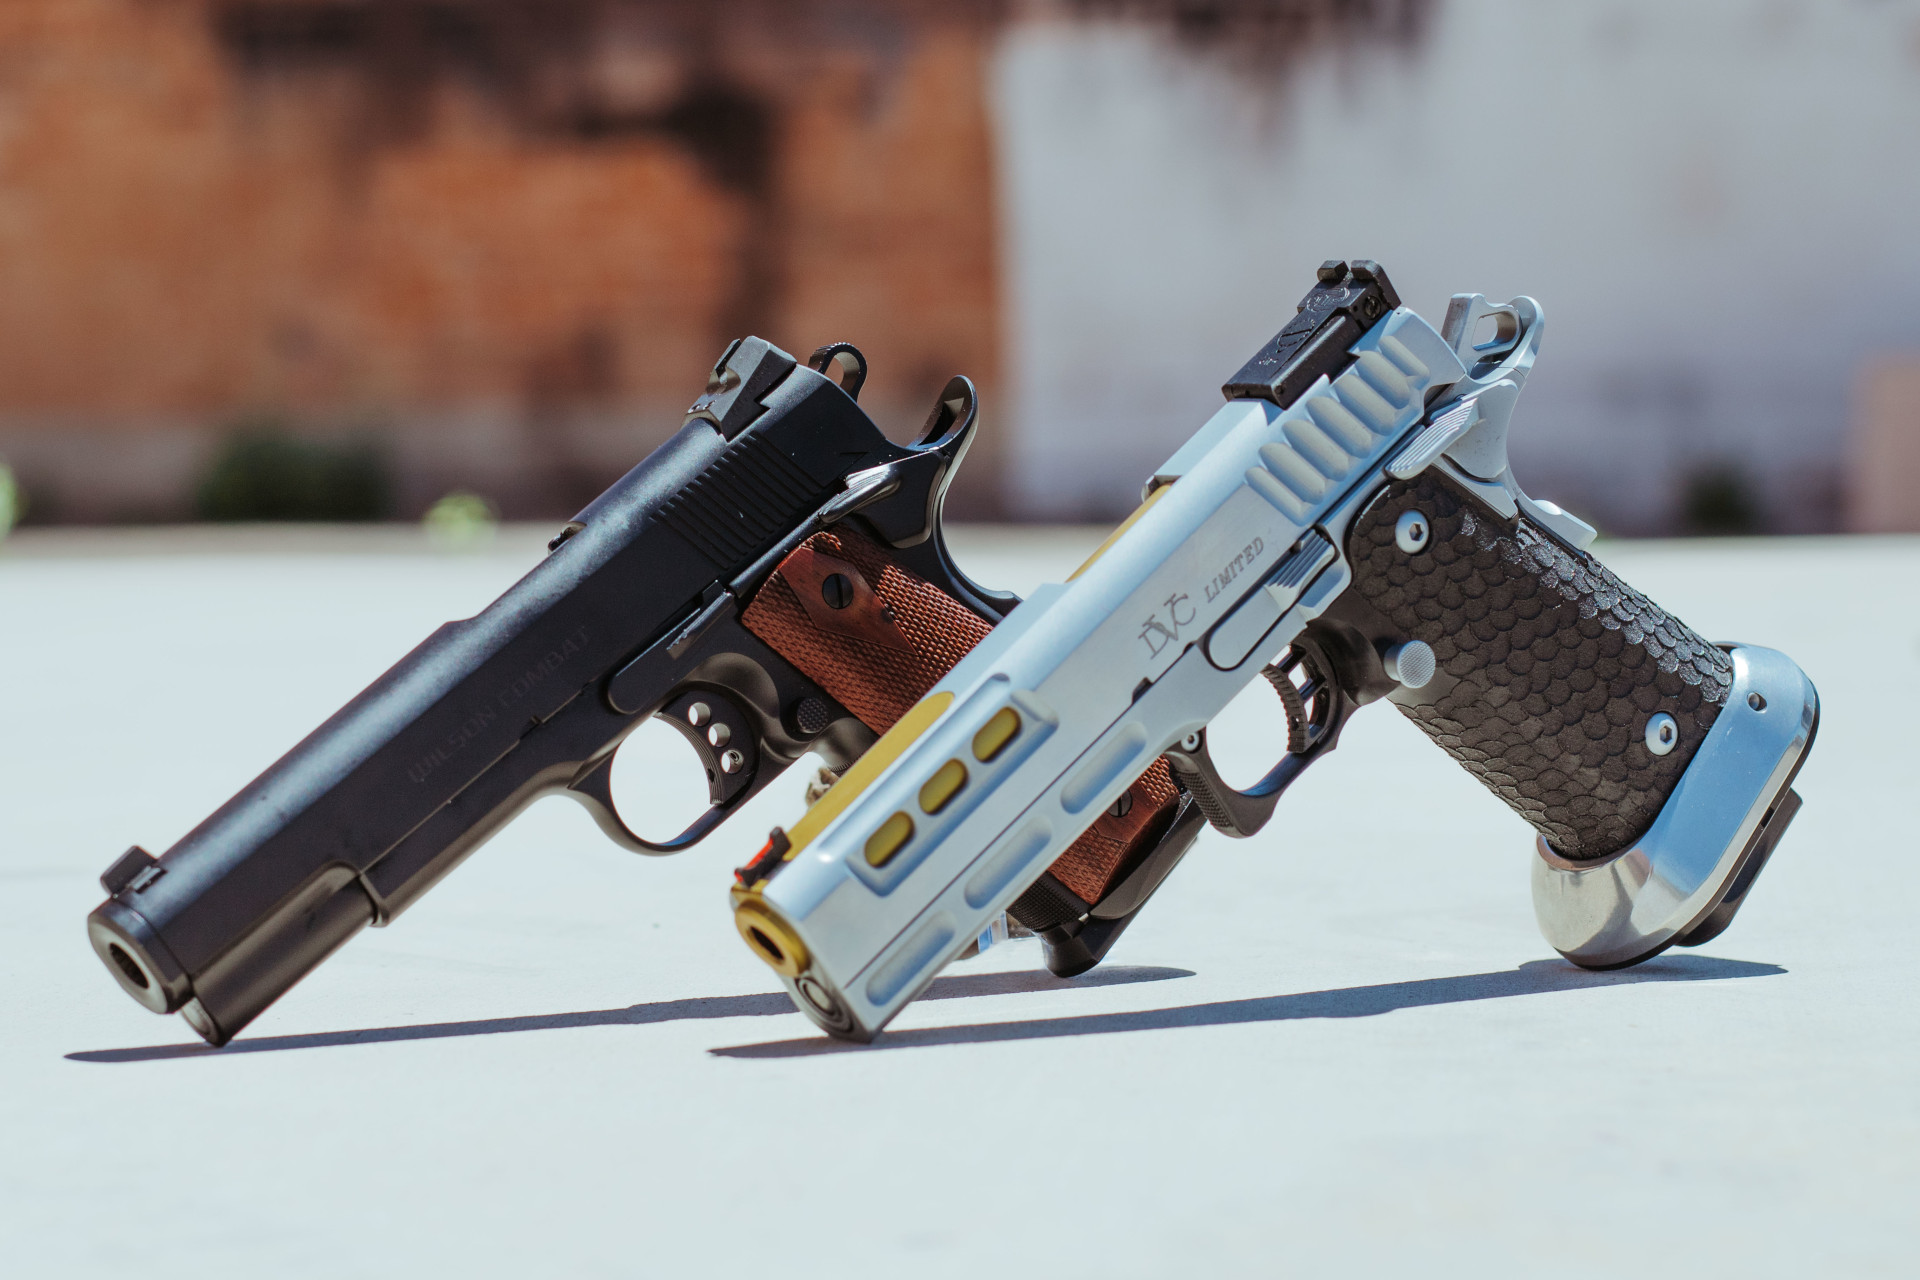 Two guns that you can purchase at our gun shop